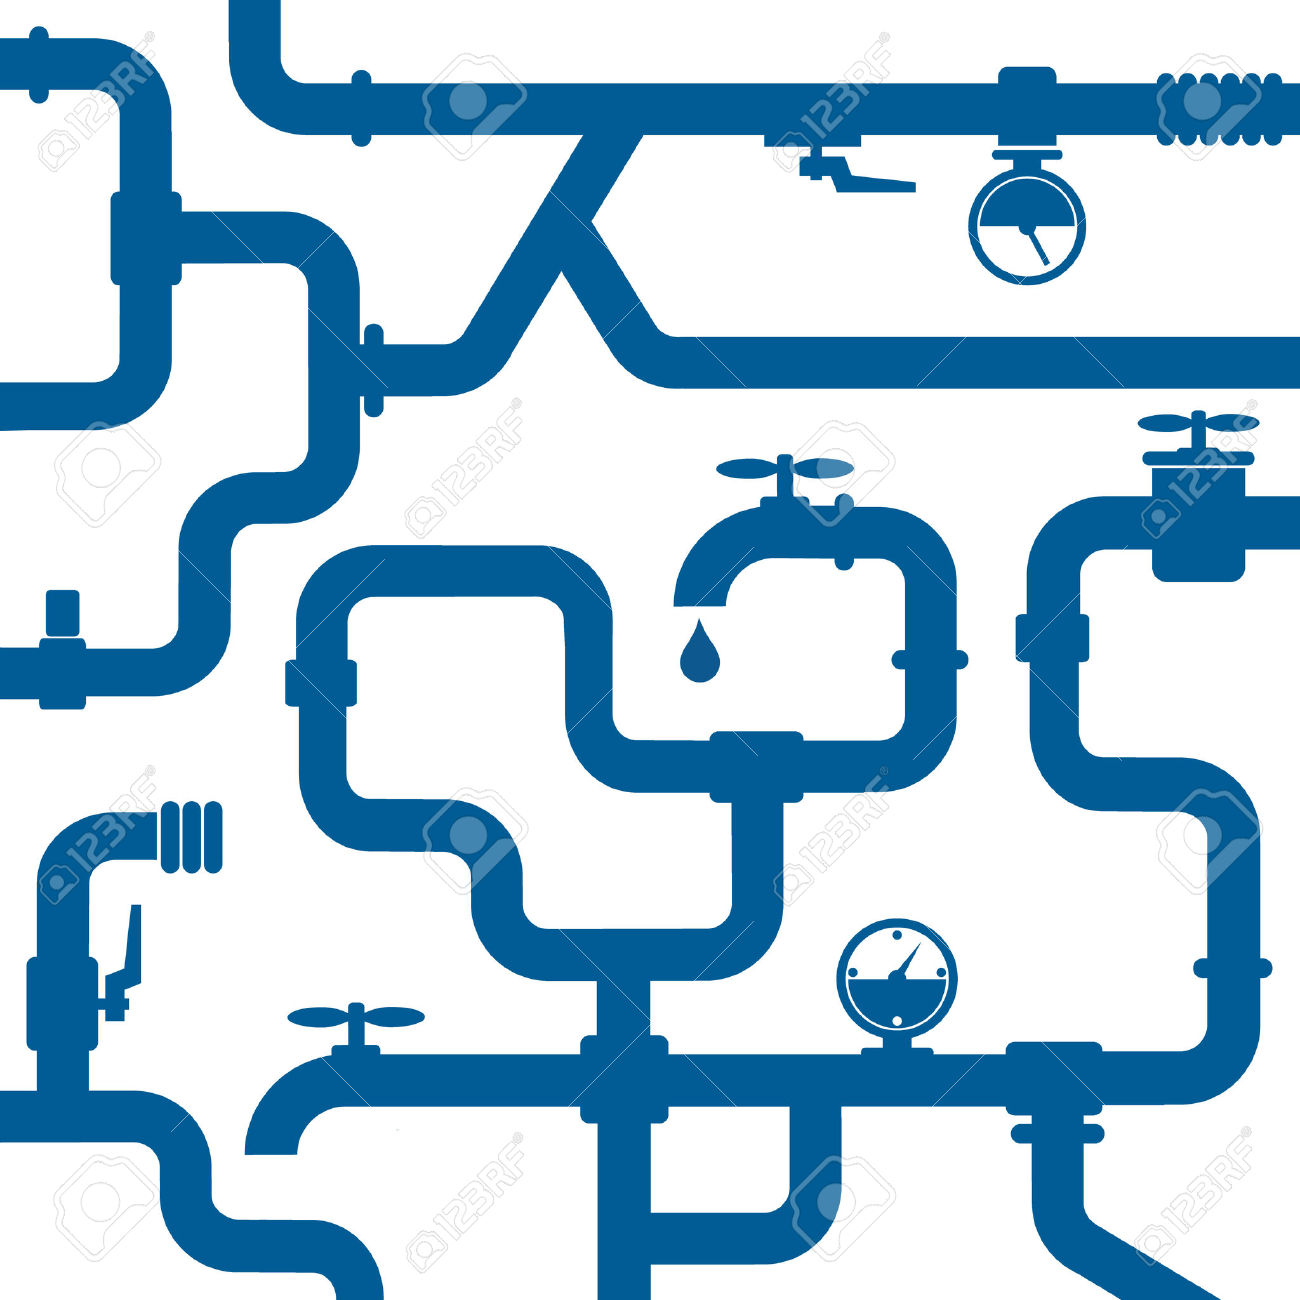 Water piping system clipart.